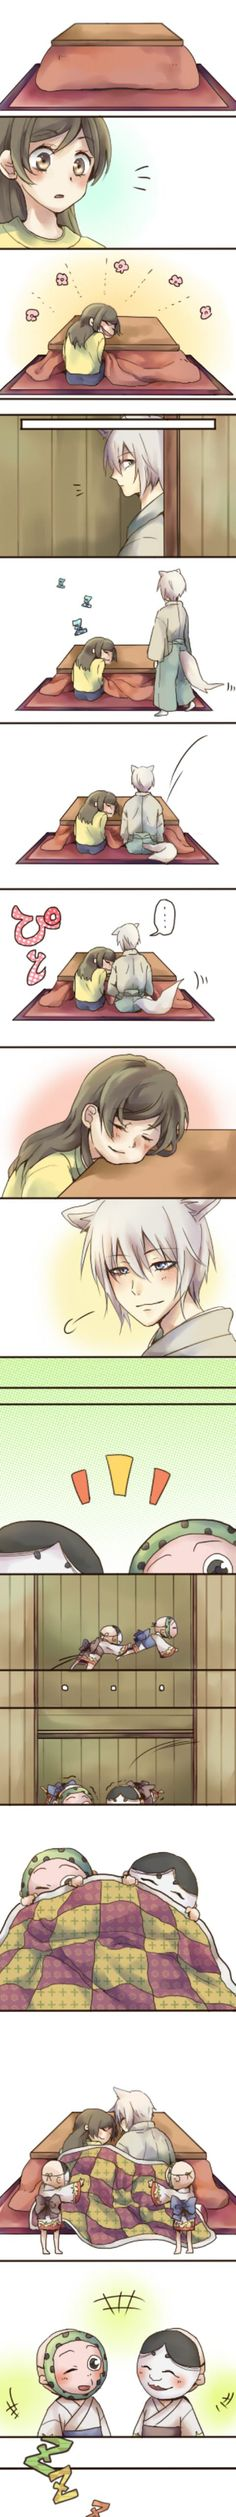 Kamisama hajimemashita- TOMOE X NANAMI    -This is so freaking adorable!